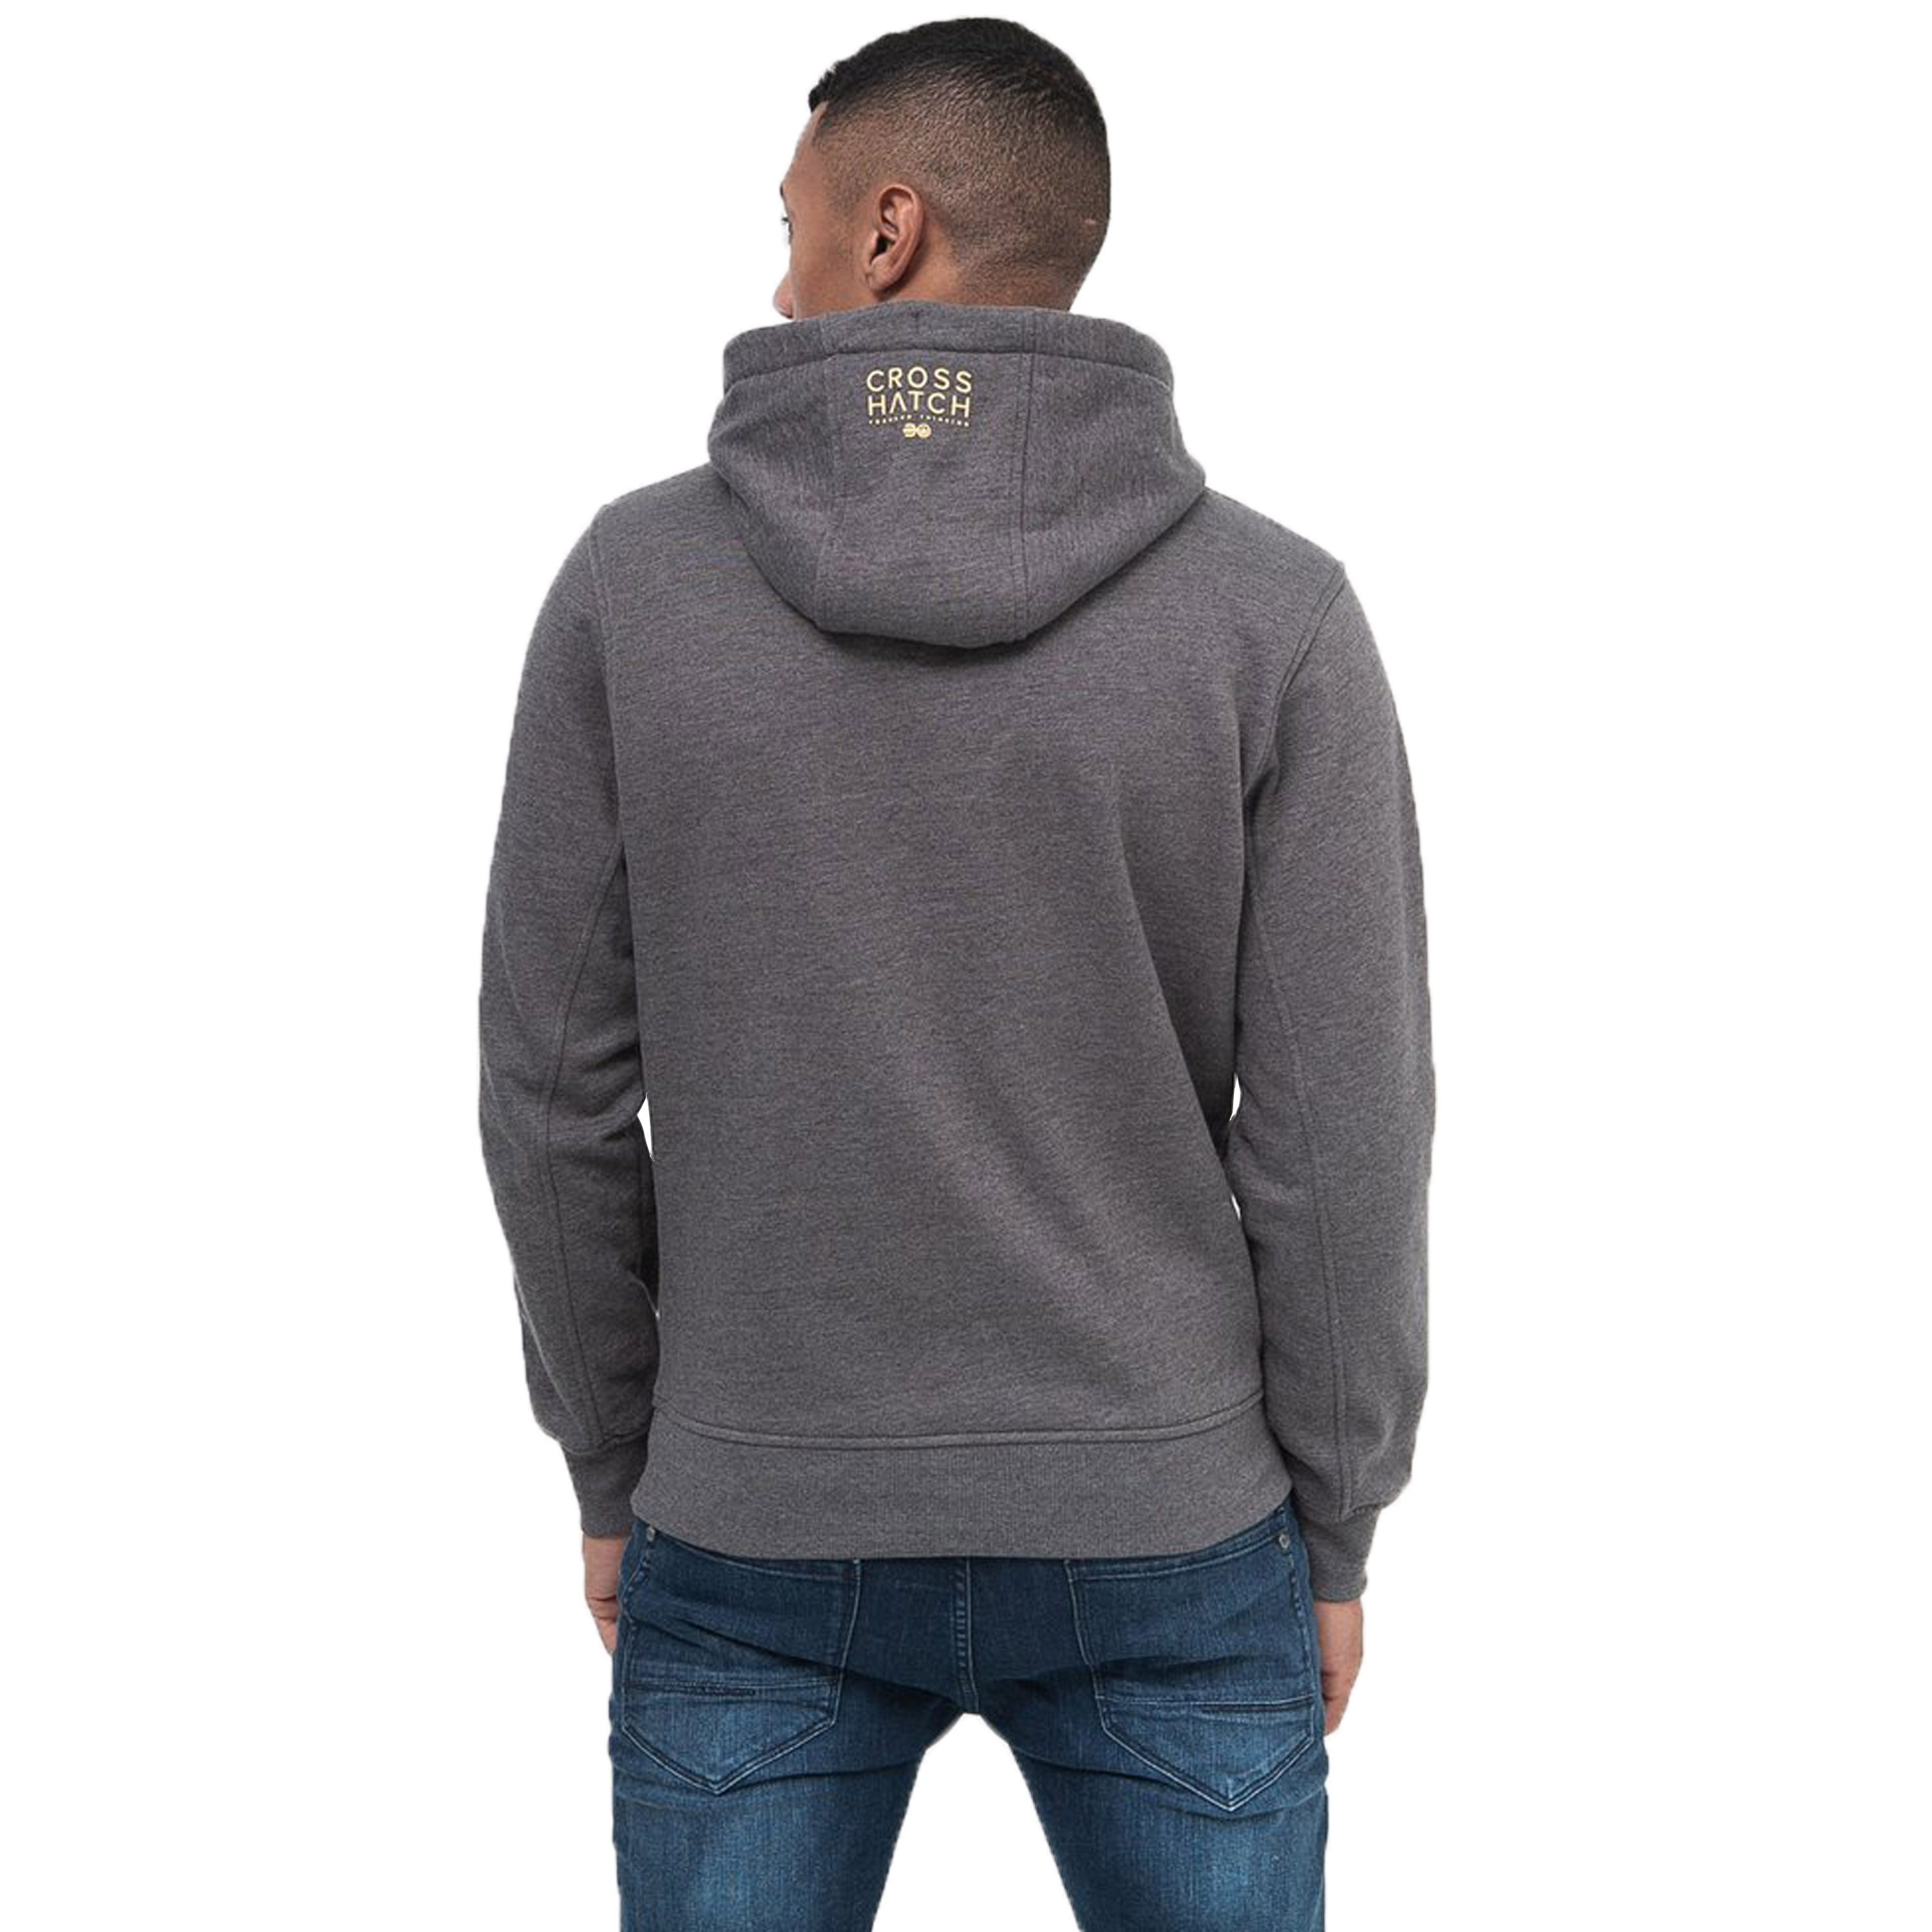 Mens-Sweatshirt-By-Crosshatch-Over-The-Head-Hoodie-Printed-Pullover-Cotton-Top thumbnail 7